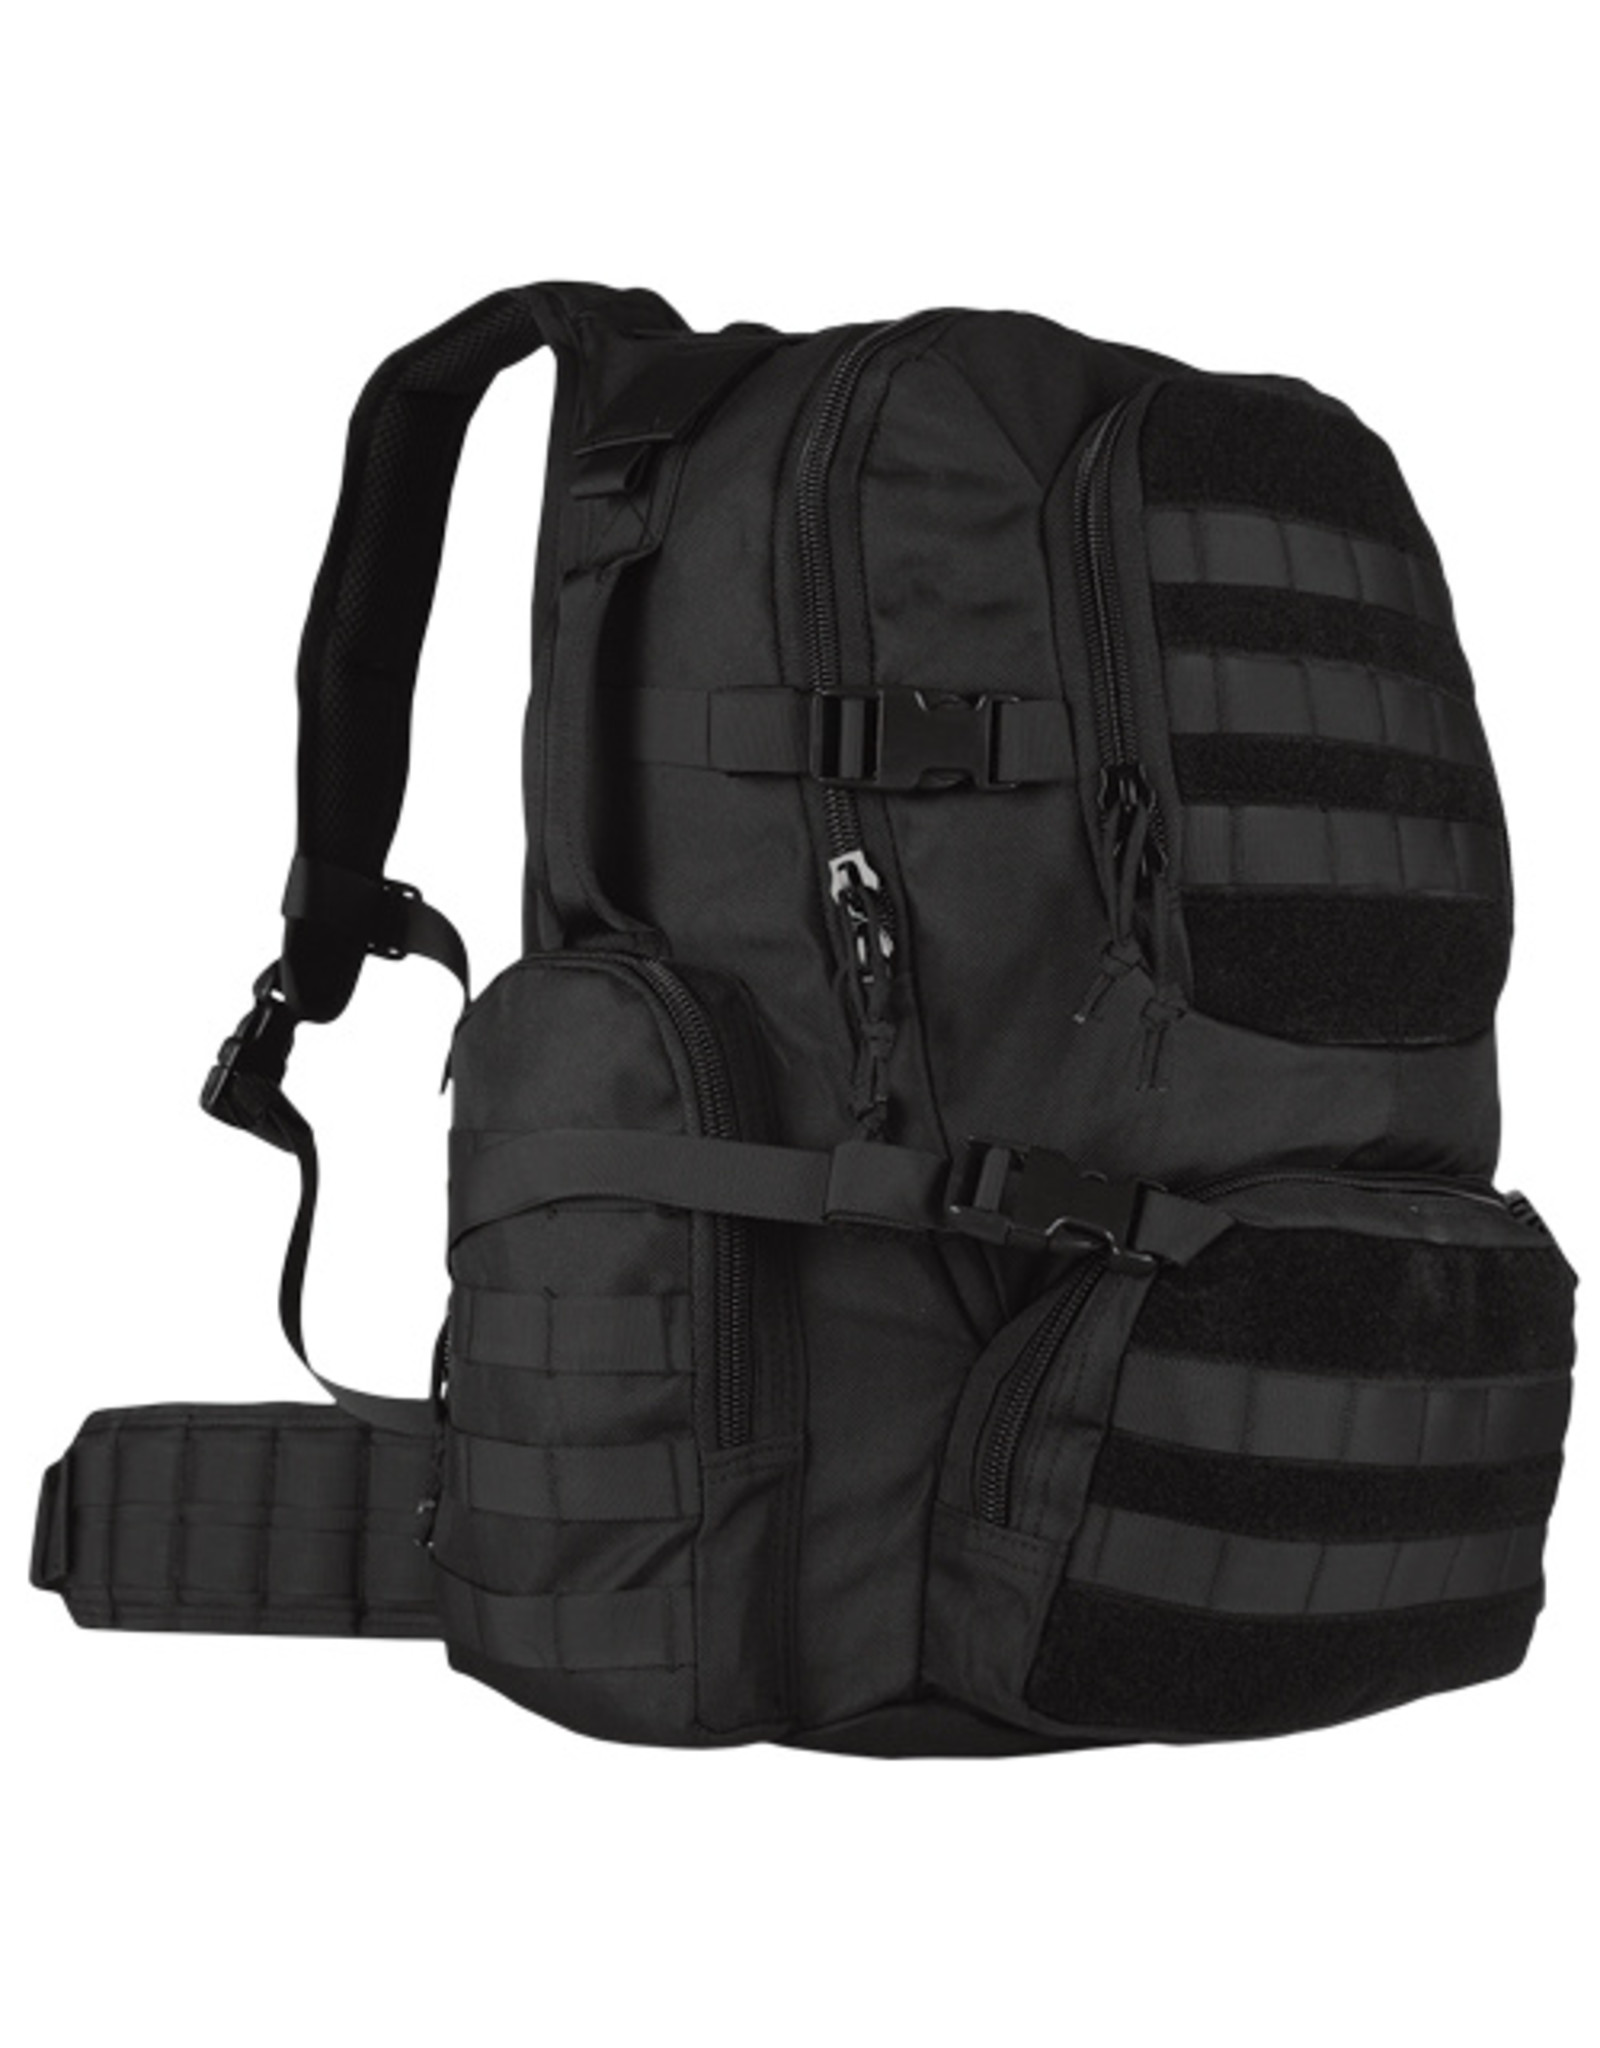 FOX TACTICAL GEAR FIELD OPERATOR'S ACTION PACK